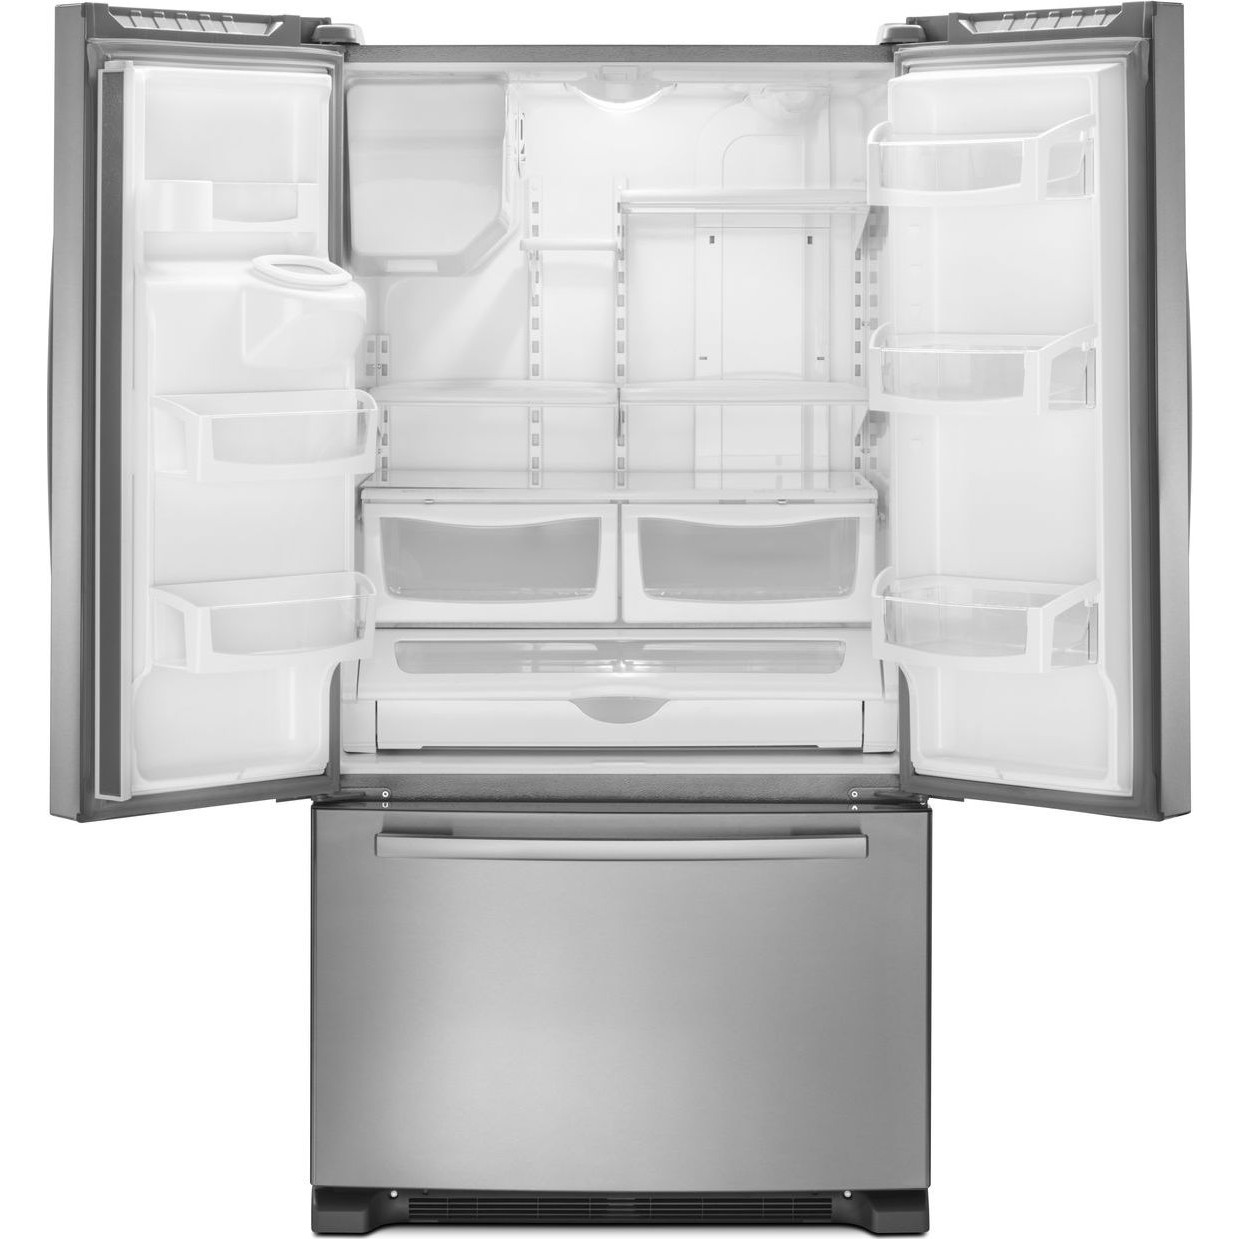 Afi2539erm Amana 25 Cu Ft French Door Refrigerator